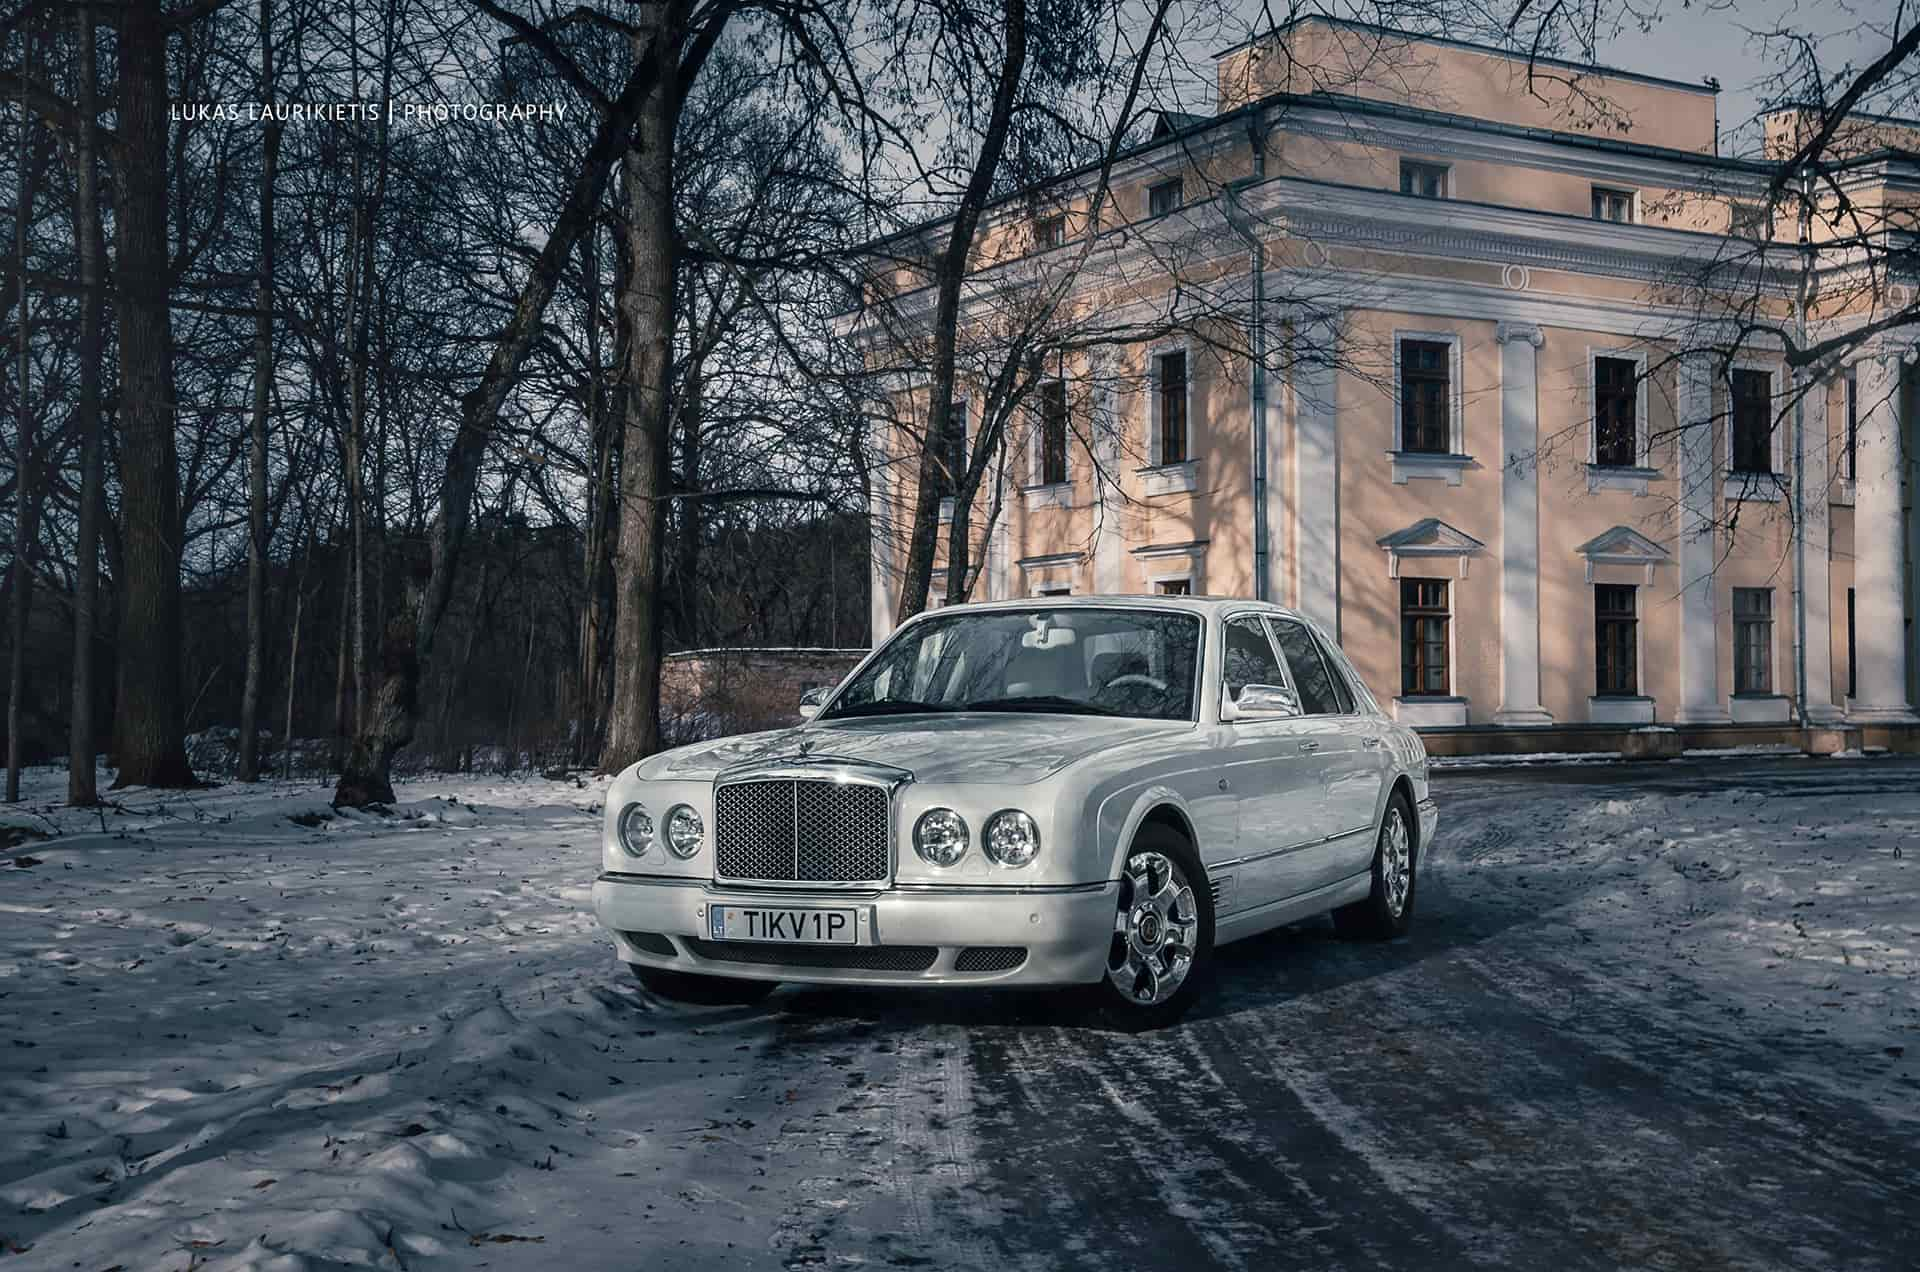 Bentley Arnage Tikvip